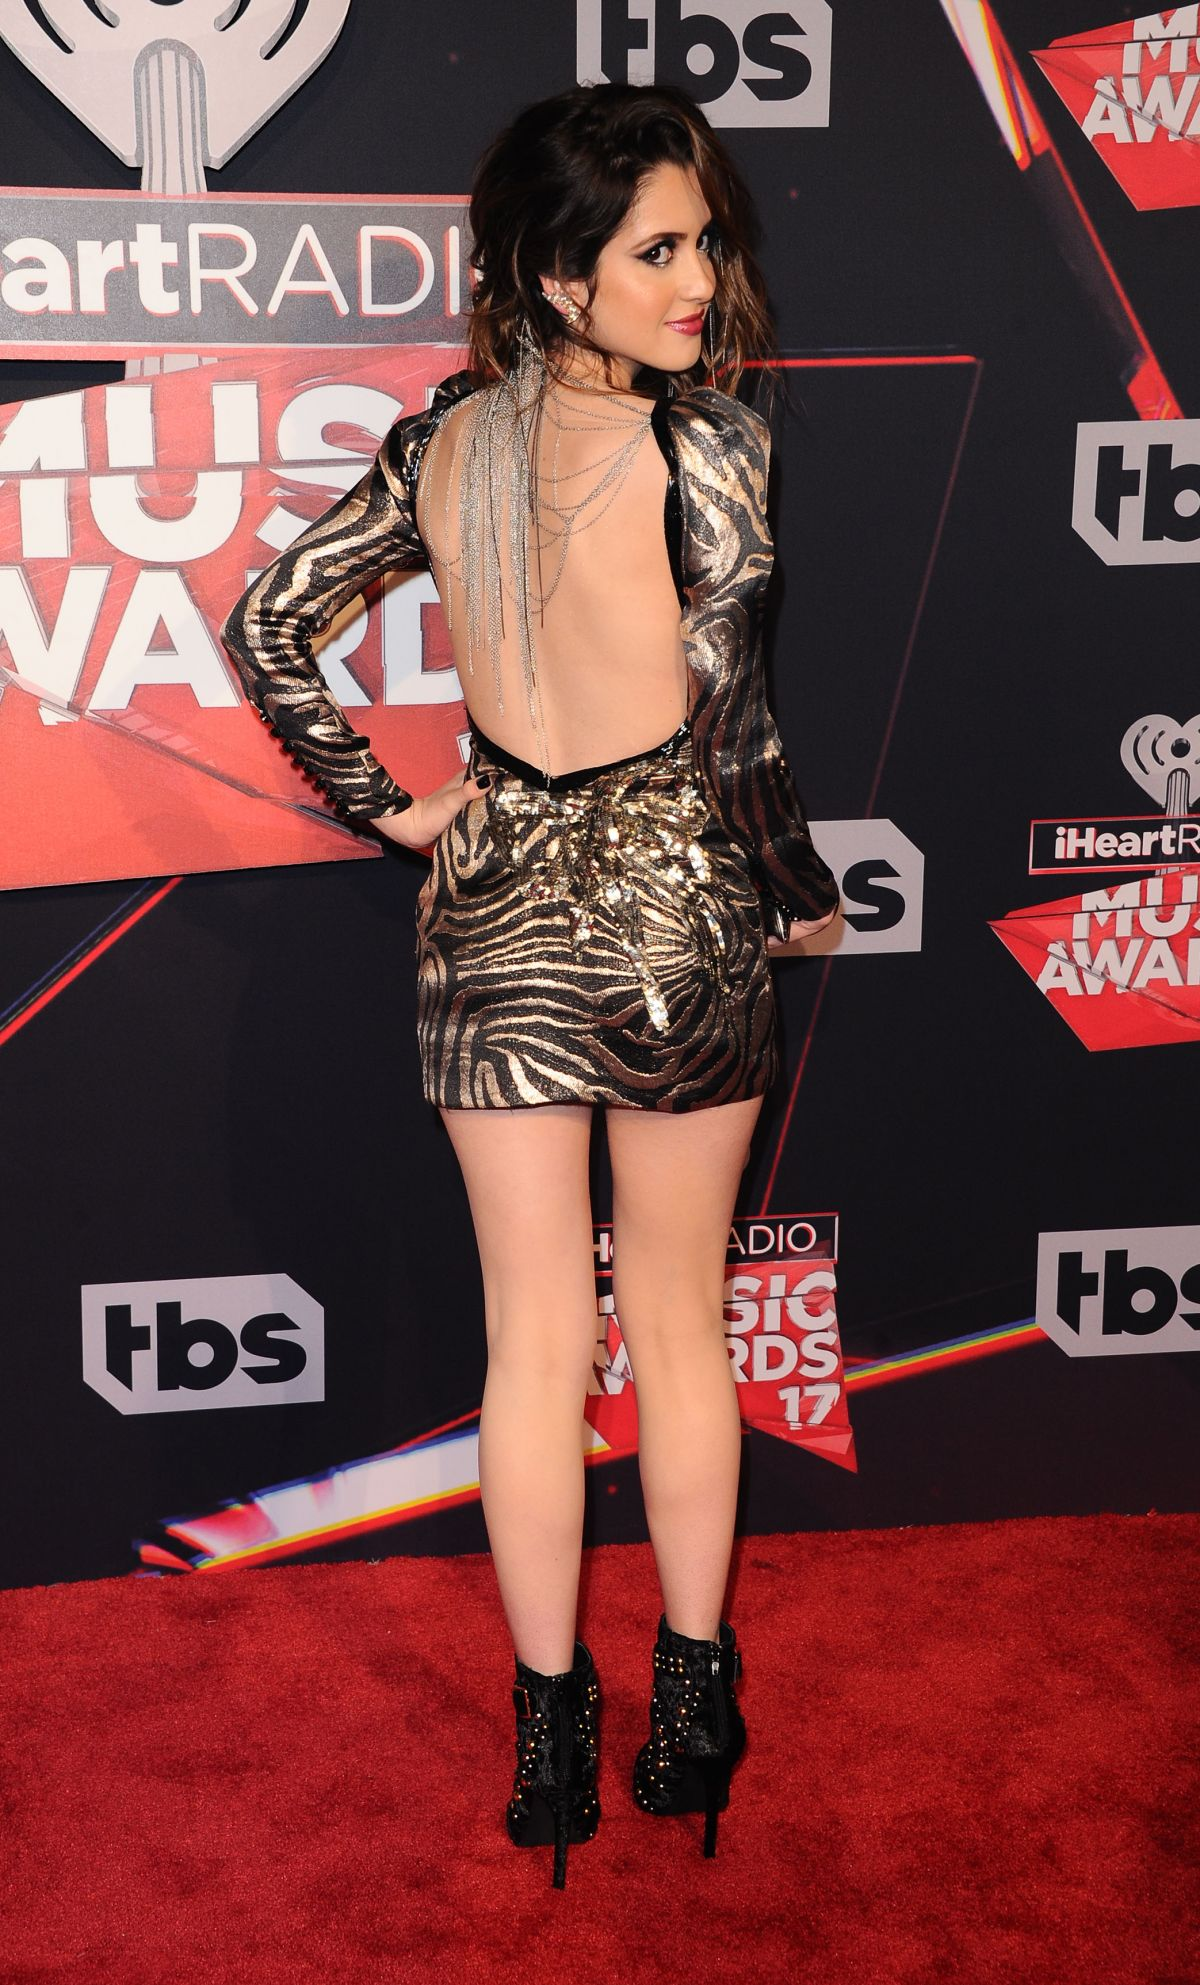 LAURA MARANO at 2017 iHeartRadio Music Awards in Los ...